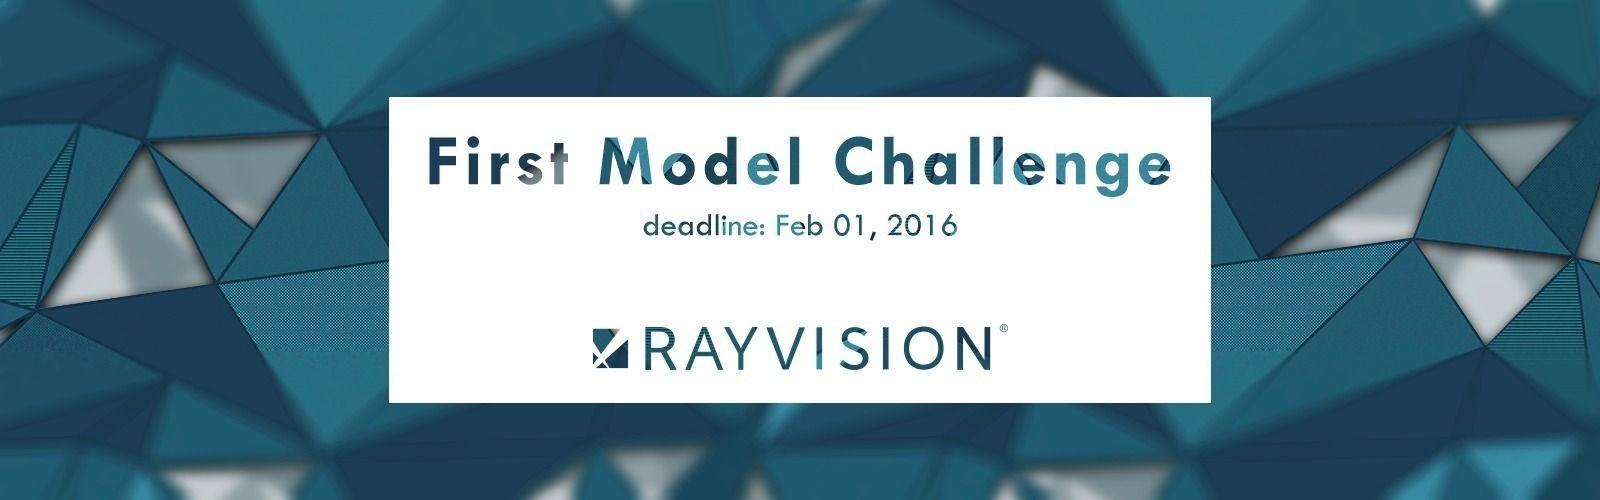 First Model Challenge